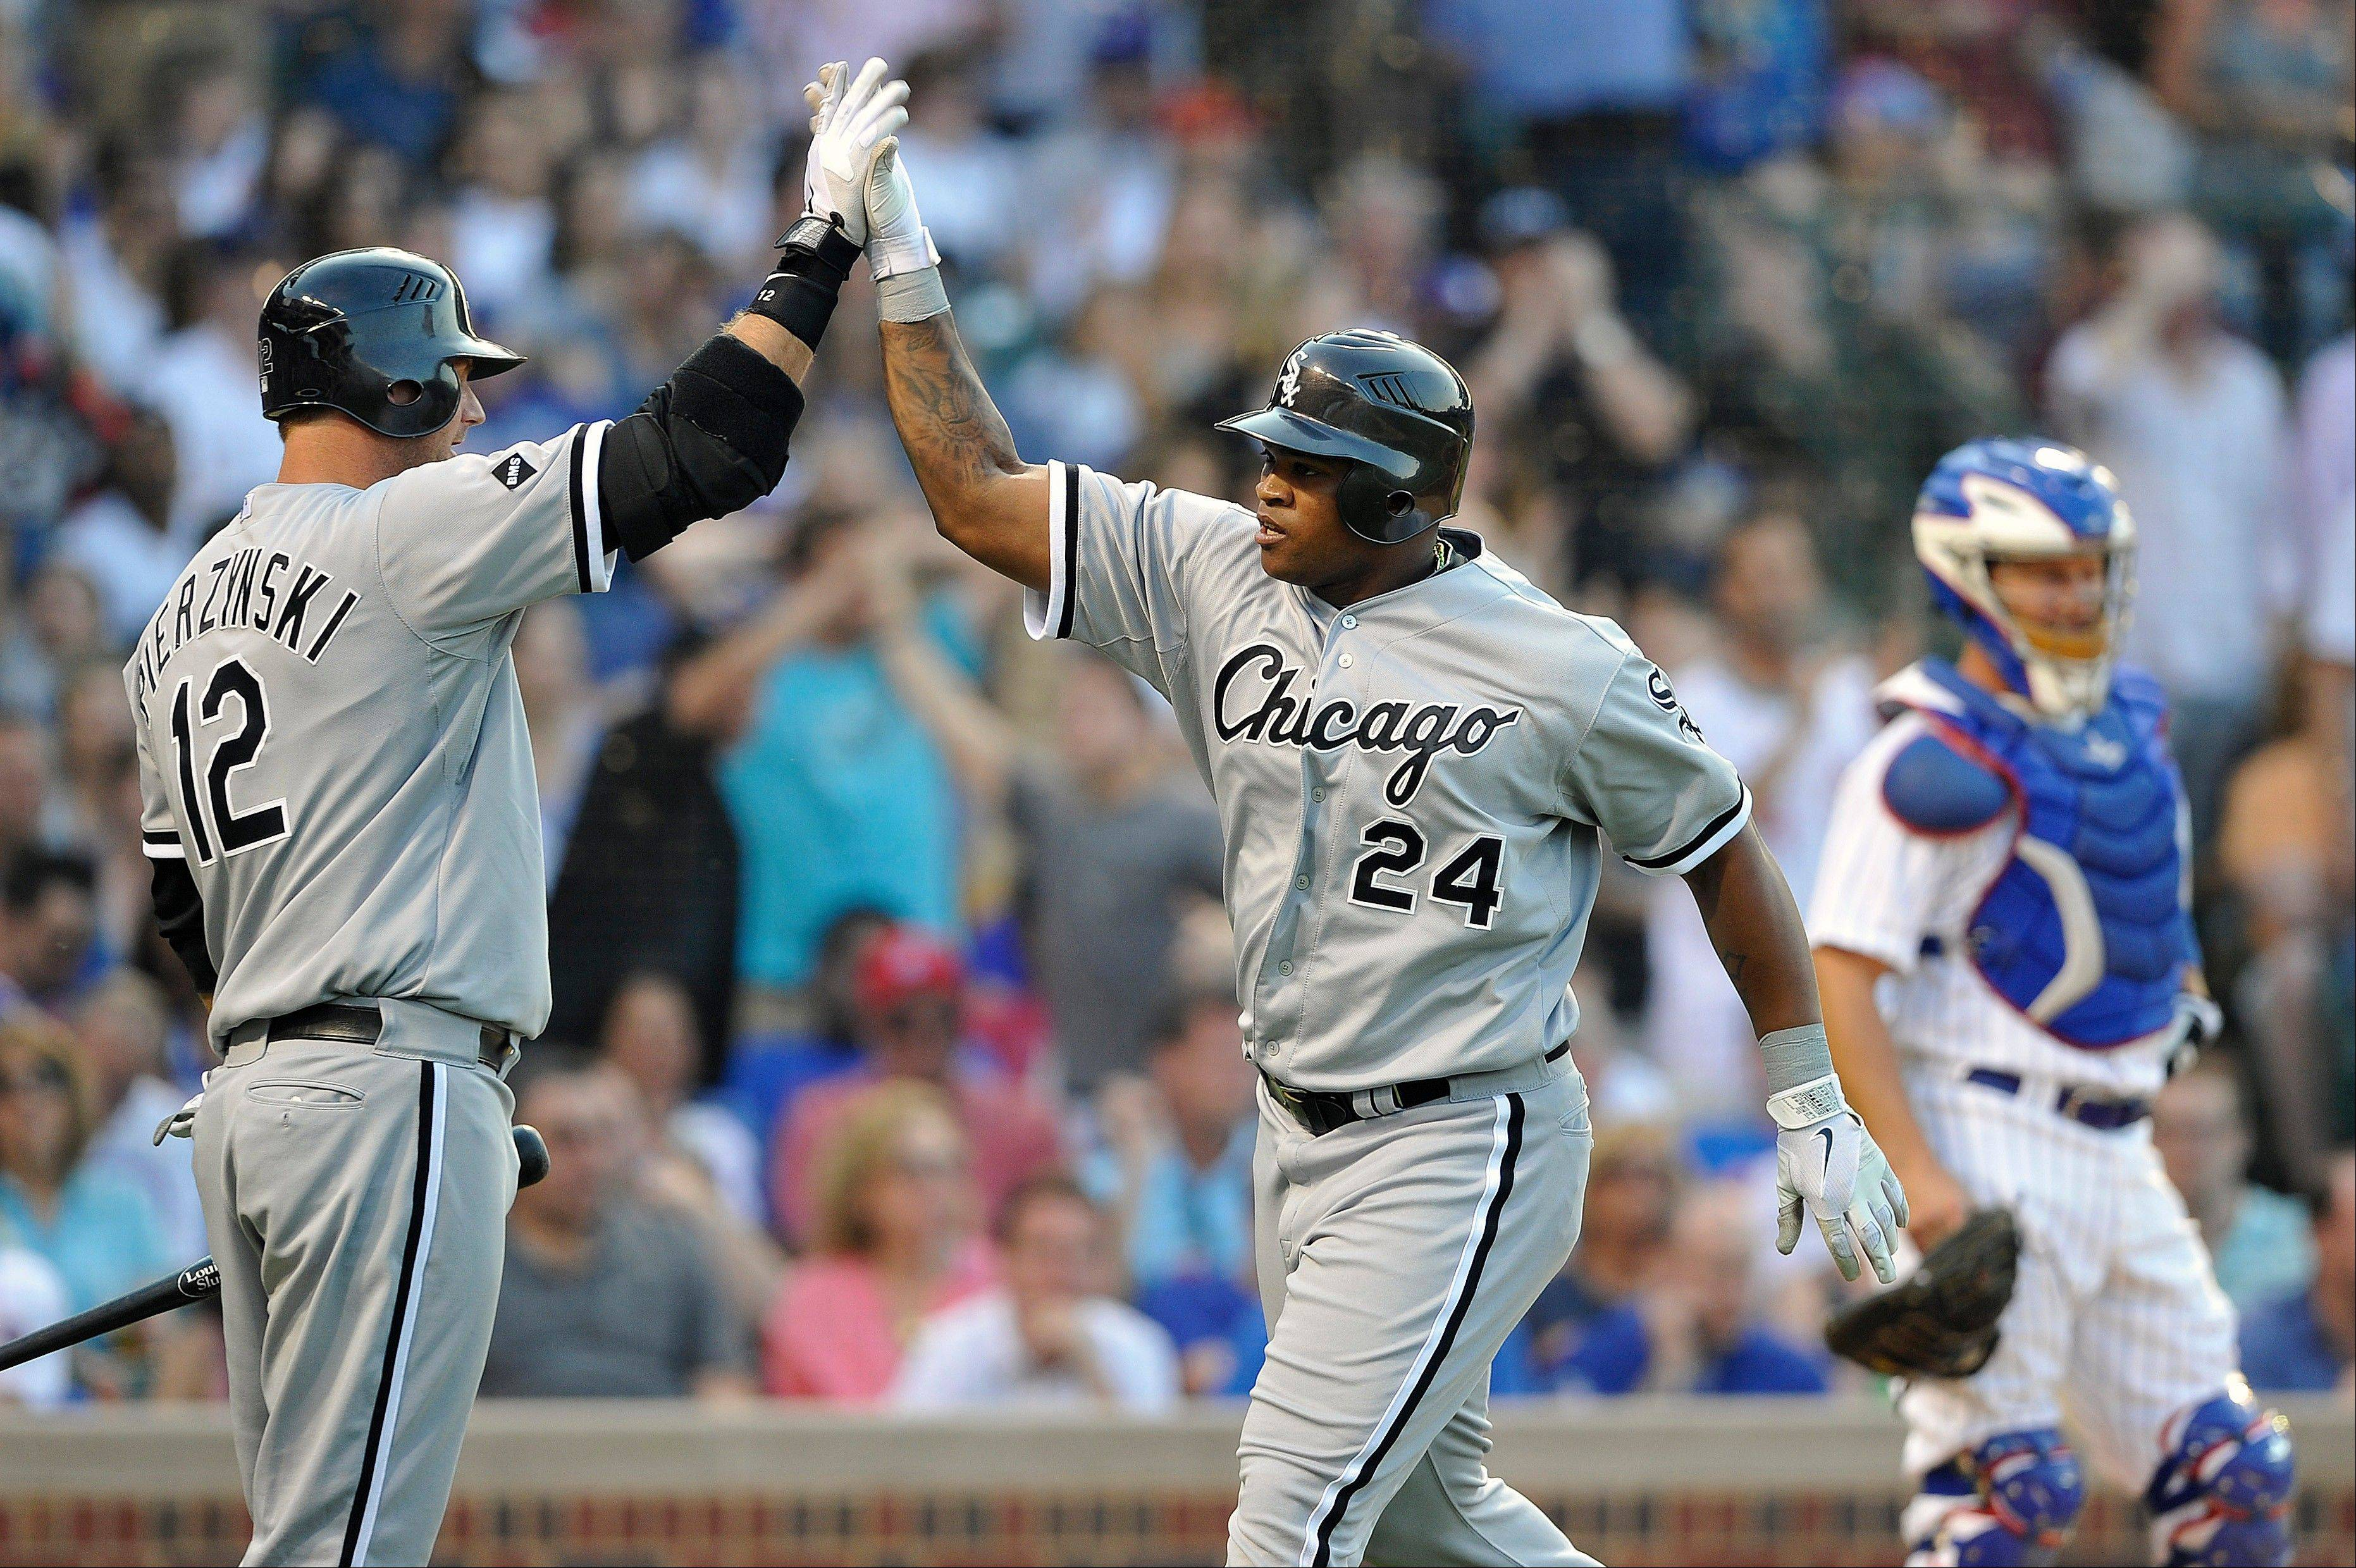 A.J. Pierzynski, left, Dayan Viciedo and the White Sox swept the Cubs in a May series at Wrigley Field.